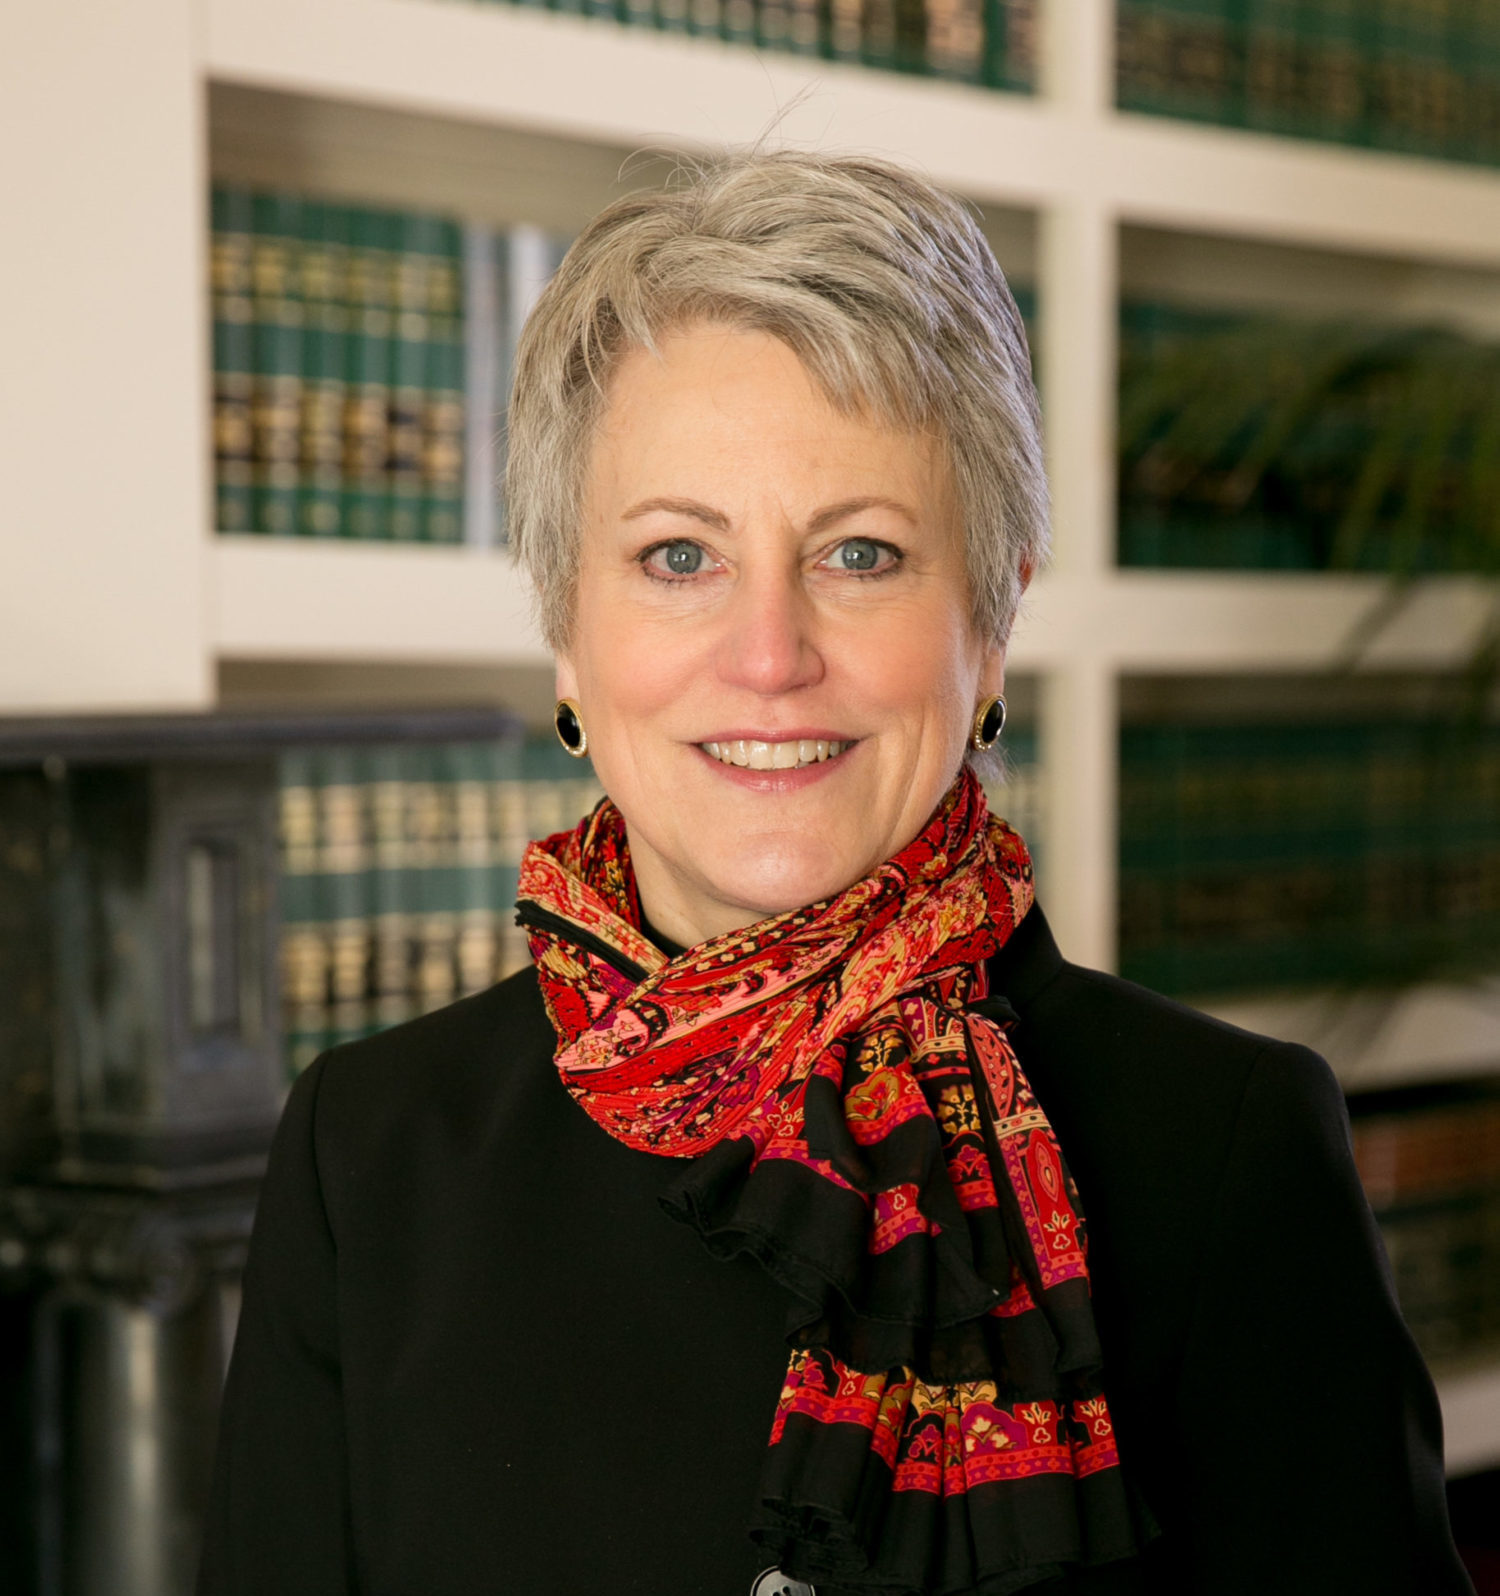 Image of Christine Cioffi, Past President of the Foundation